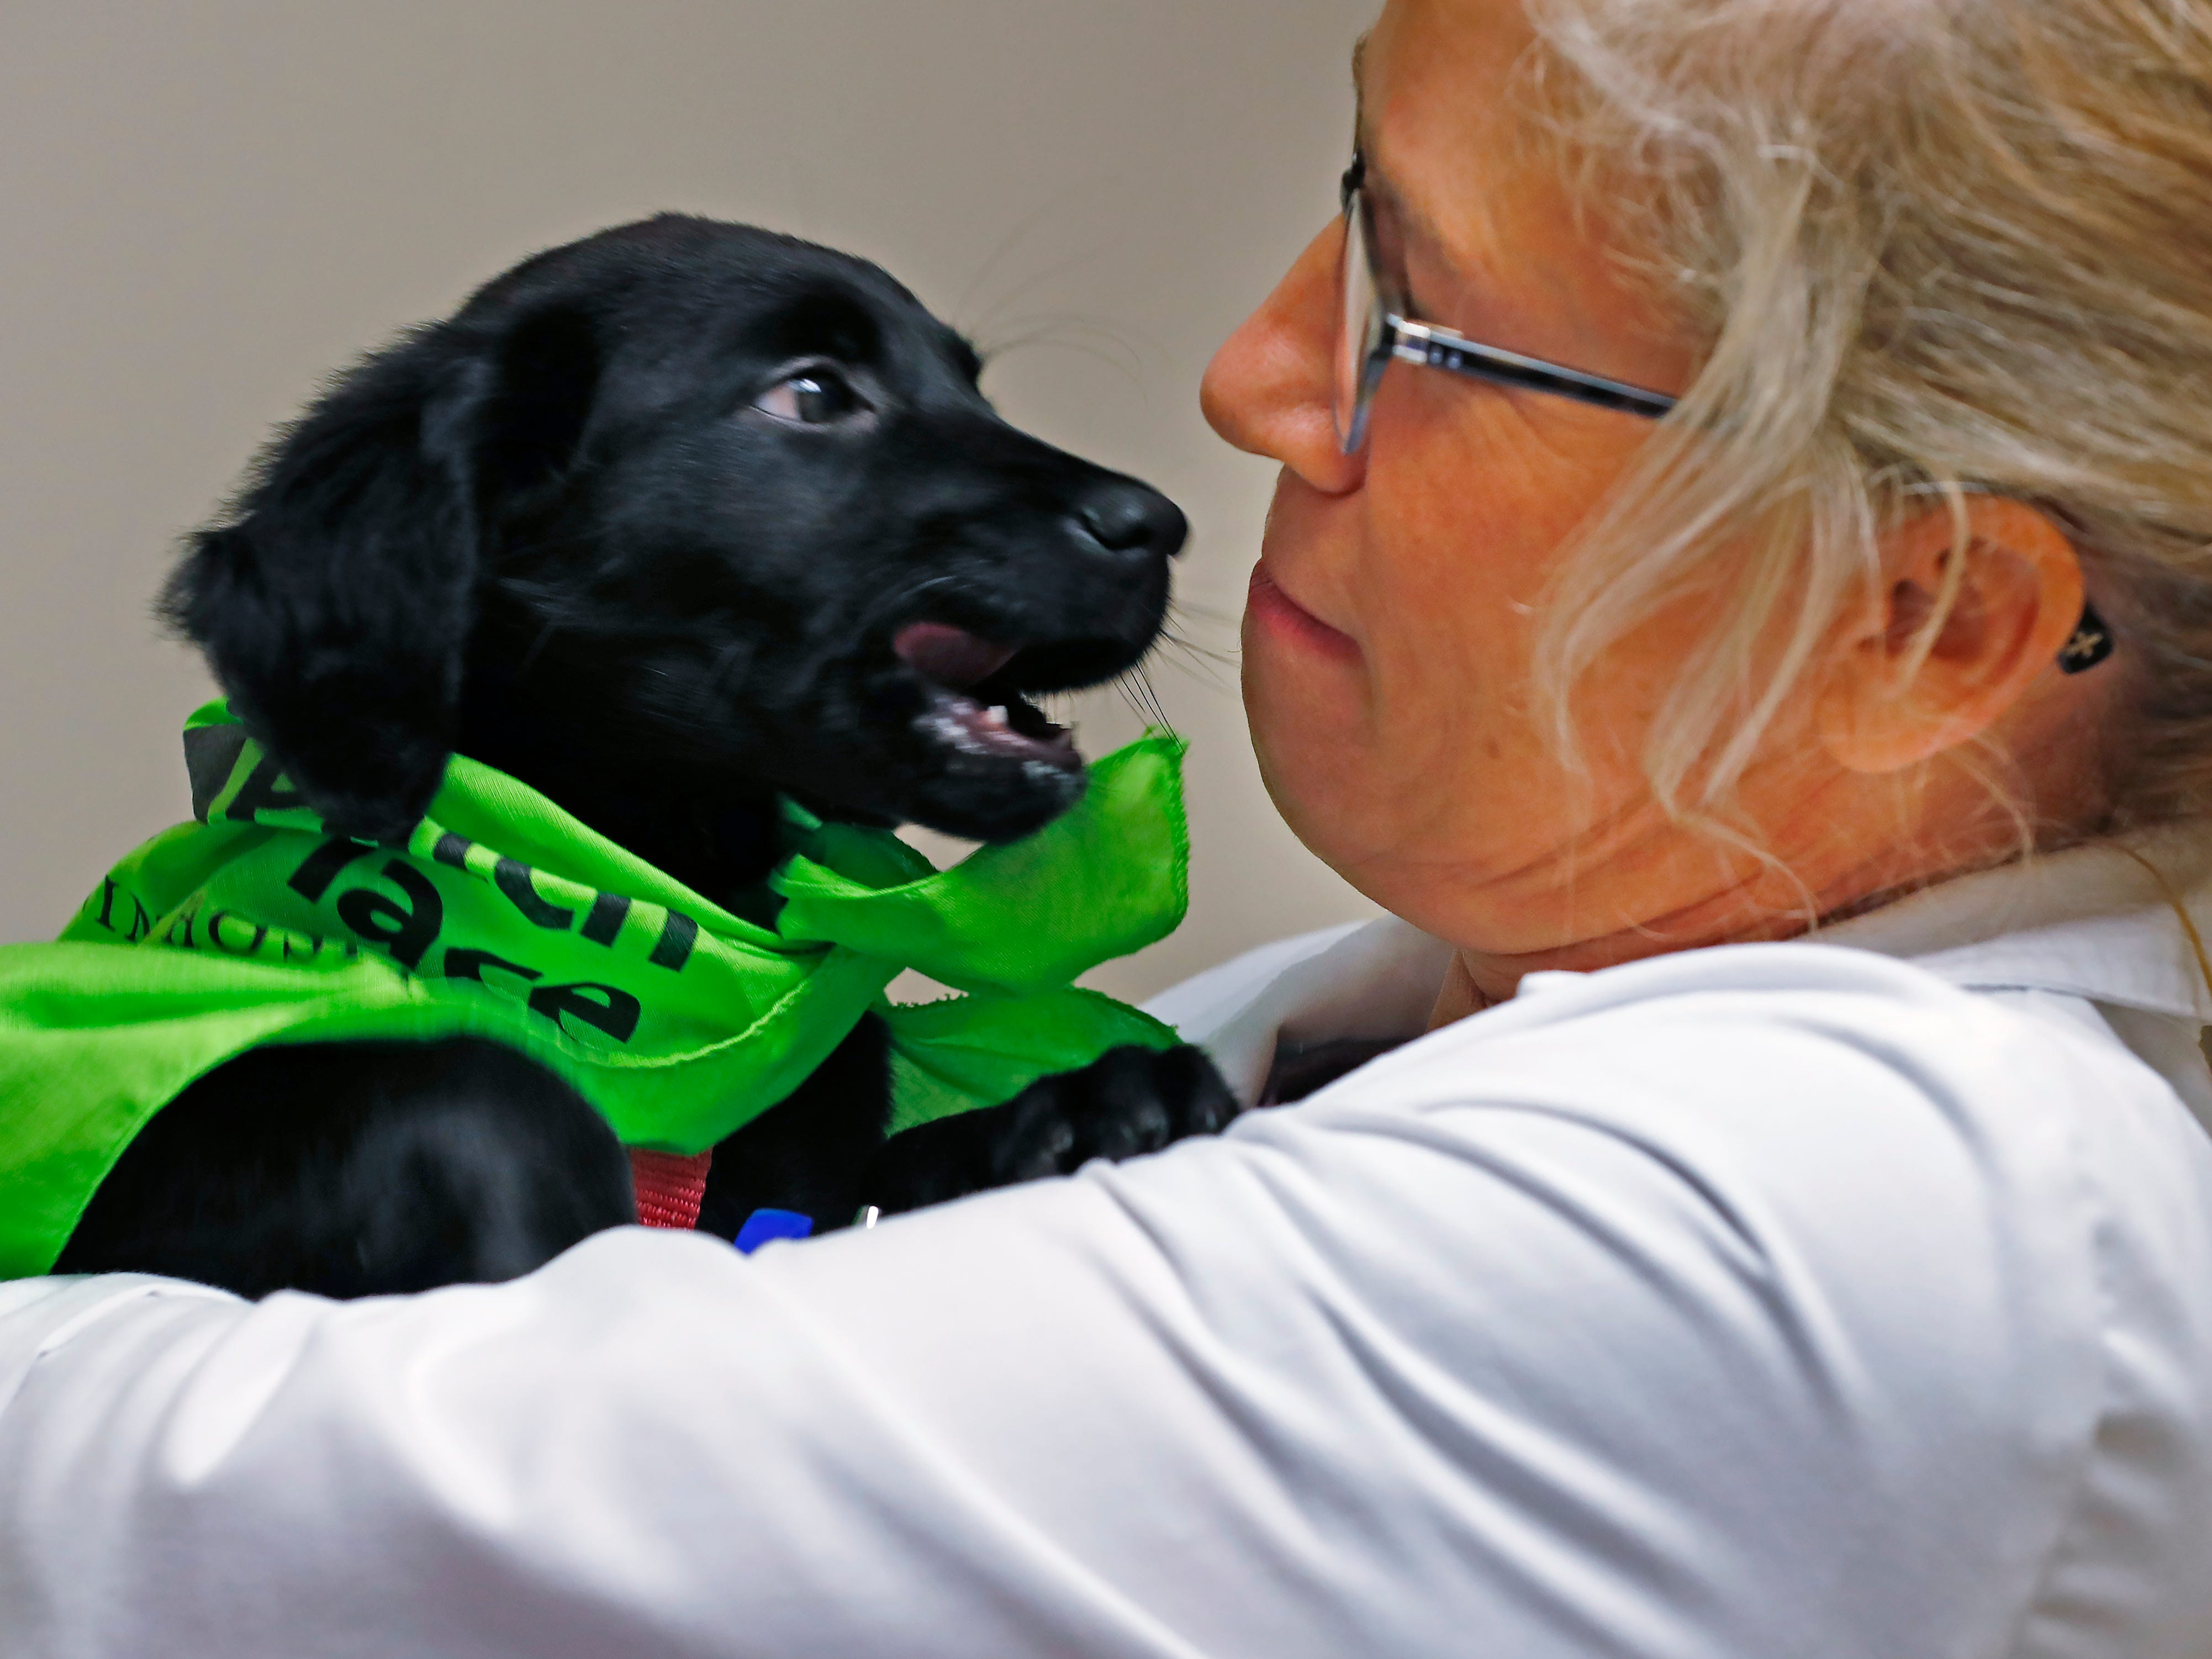 Dr. Penny Dowden plays with Maggie during her appointment at Paw Patch Place Animal Hospital, Friday, Aug. 31, 2018.  The veterinary clinic is the only one in Indiana to earn special fear free certification from an international program that aims to help vets reduce anxiety for pets prone to feel stressed in their offices.  Sprayed on this puppy's bandana is a dog pheromone used to calm dogs.